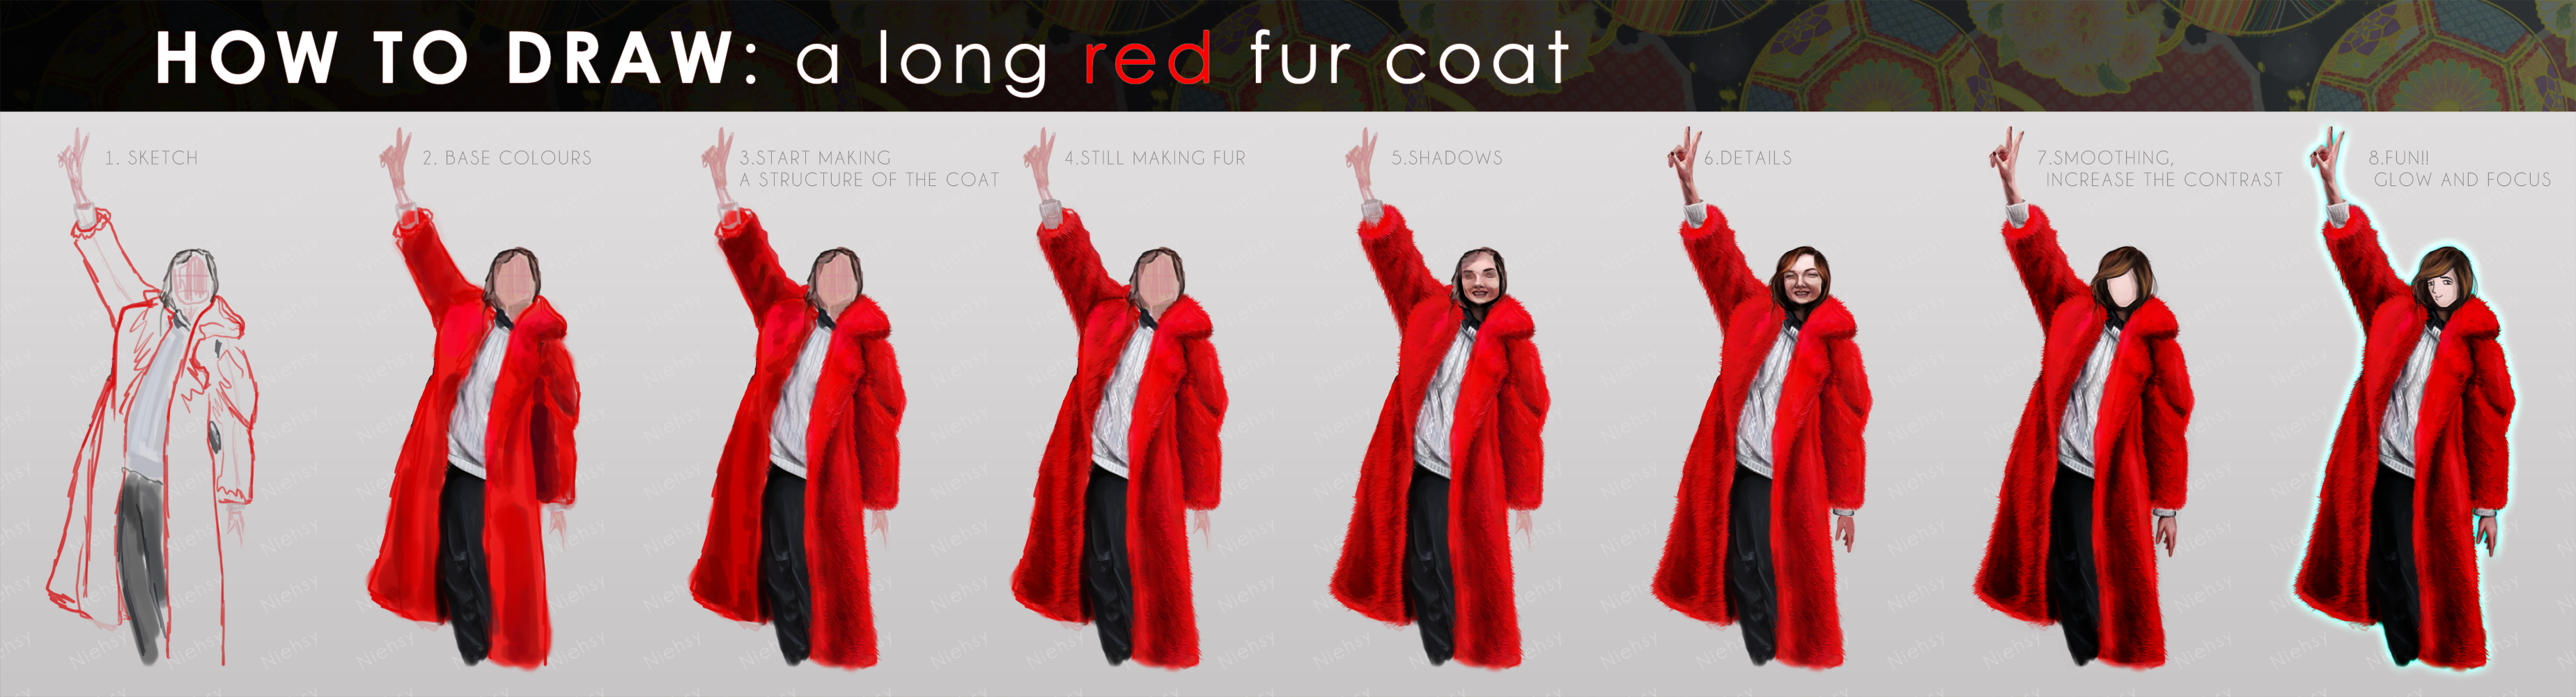 How To Draw: A Long Red Fur Coat By Niehsy